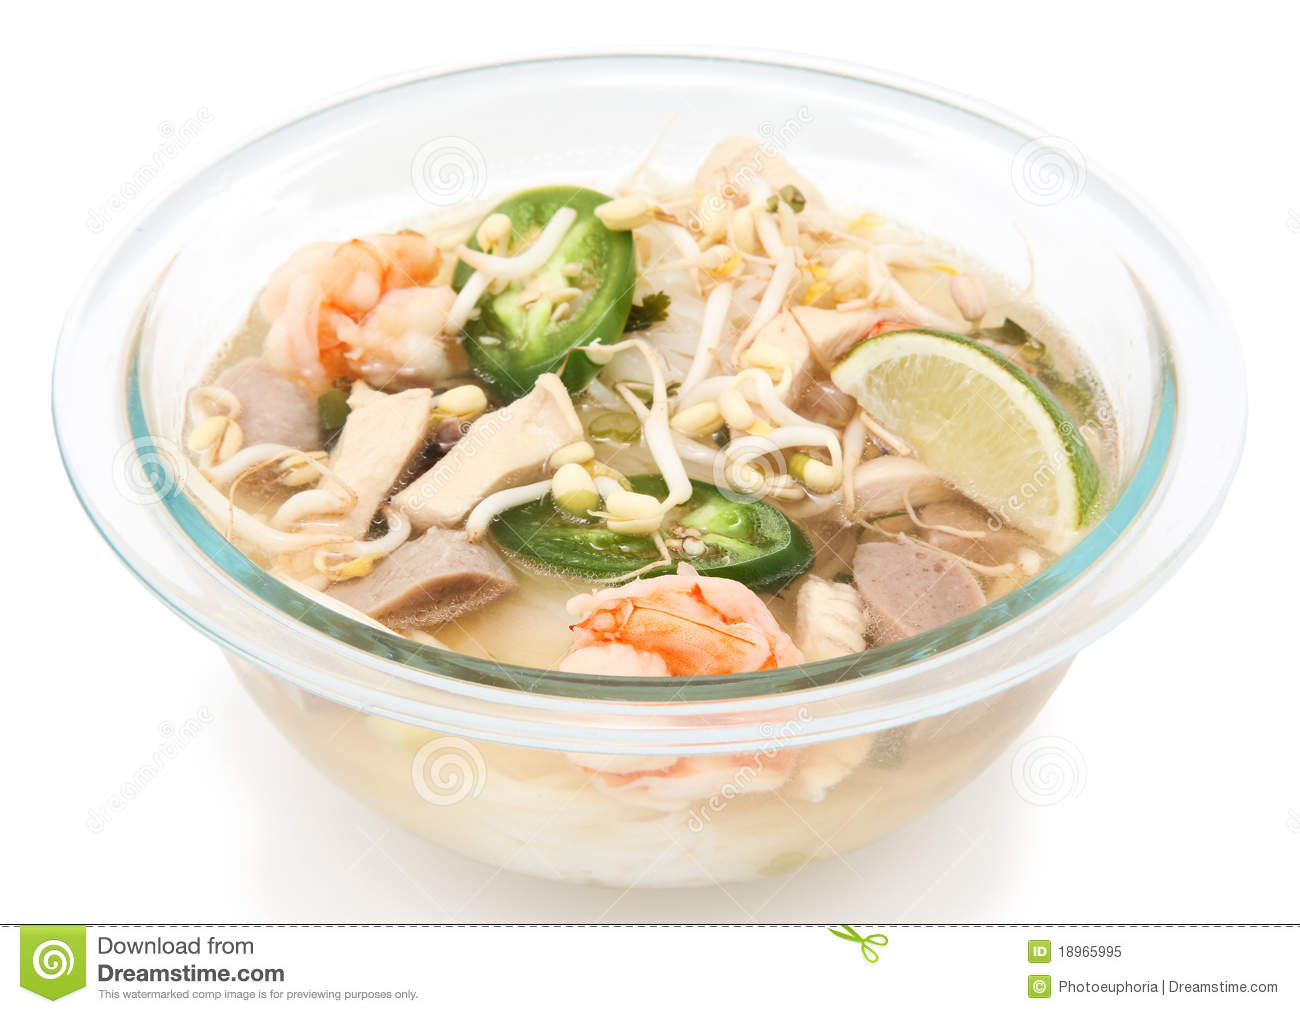 Vietnamese Pho Noodle Soup Royalty Free Stock Photo   Image  18965995